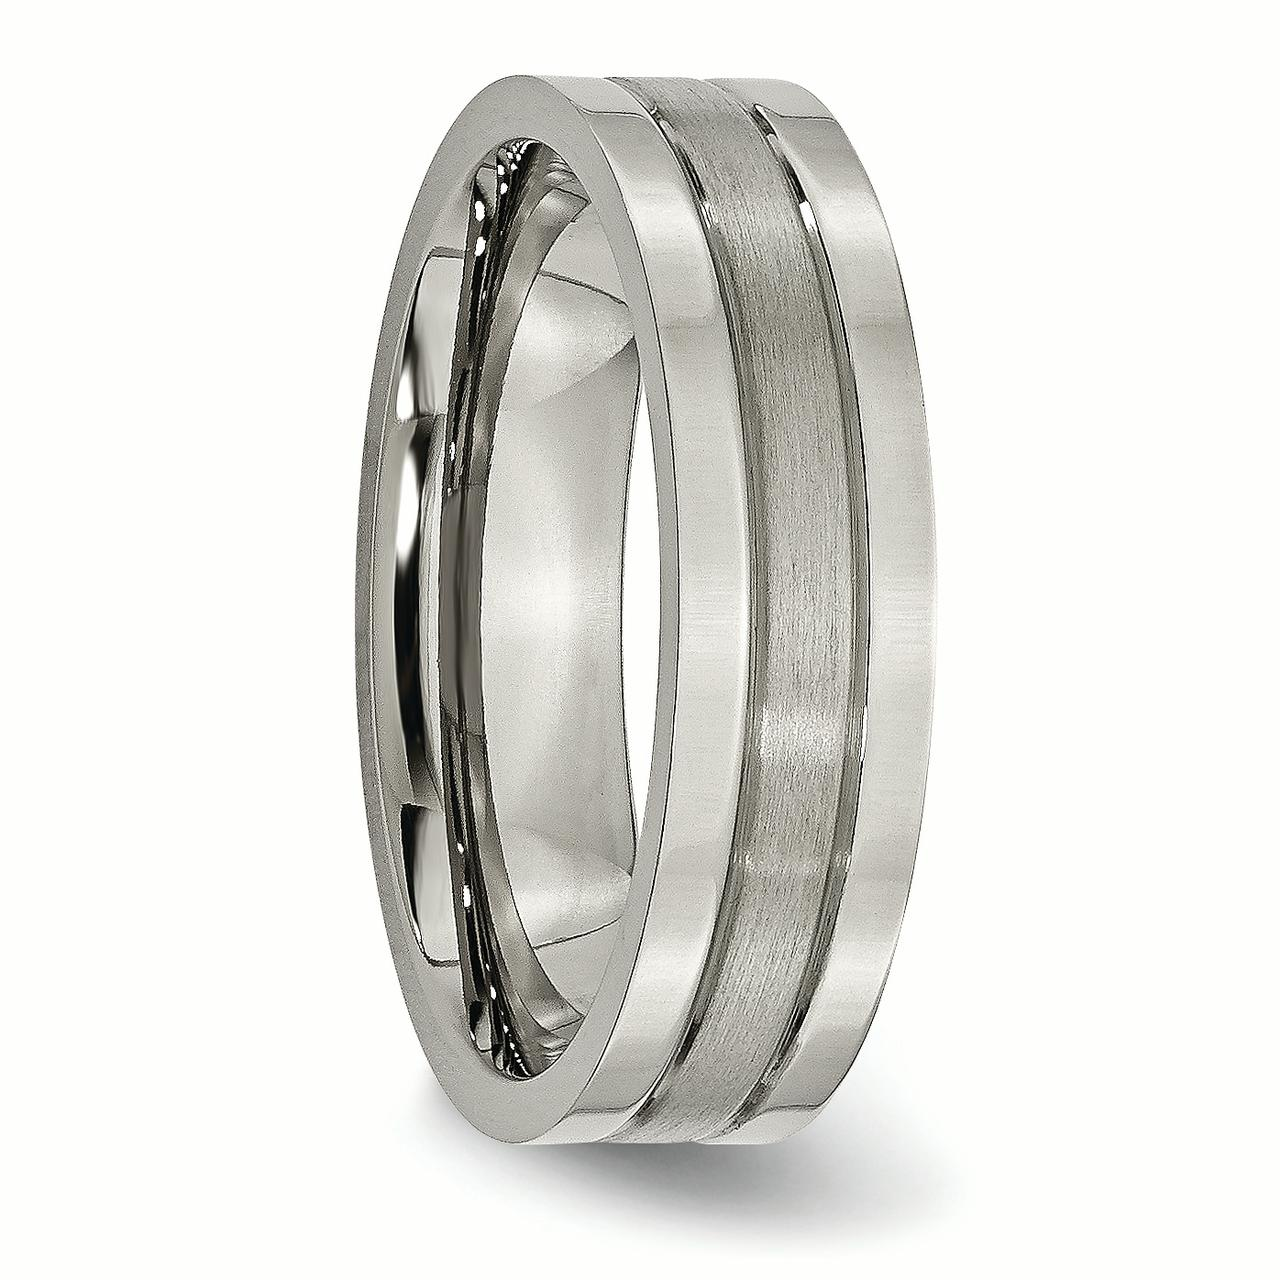 Titanium Grooved 6mm Brushed Wedding Ring Band Size 11.50 Fashion Jewelry Gifts For Women For Her - image 3 de 6